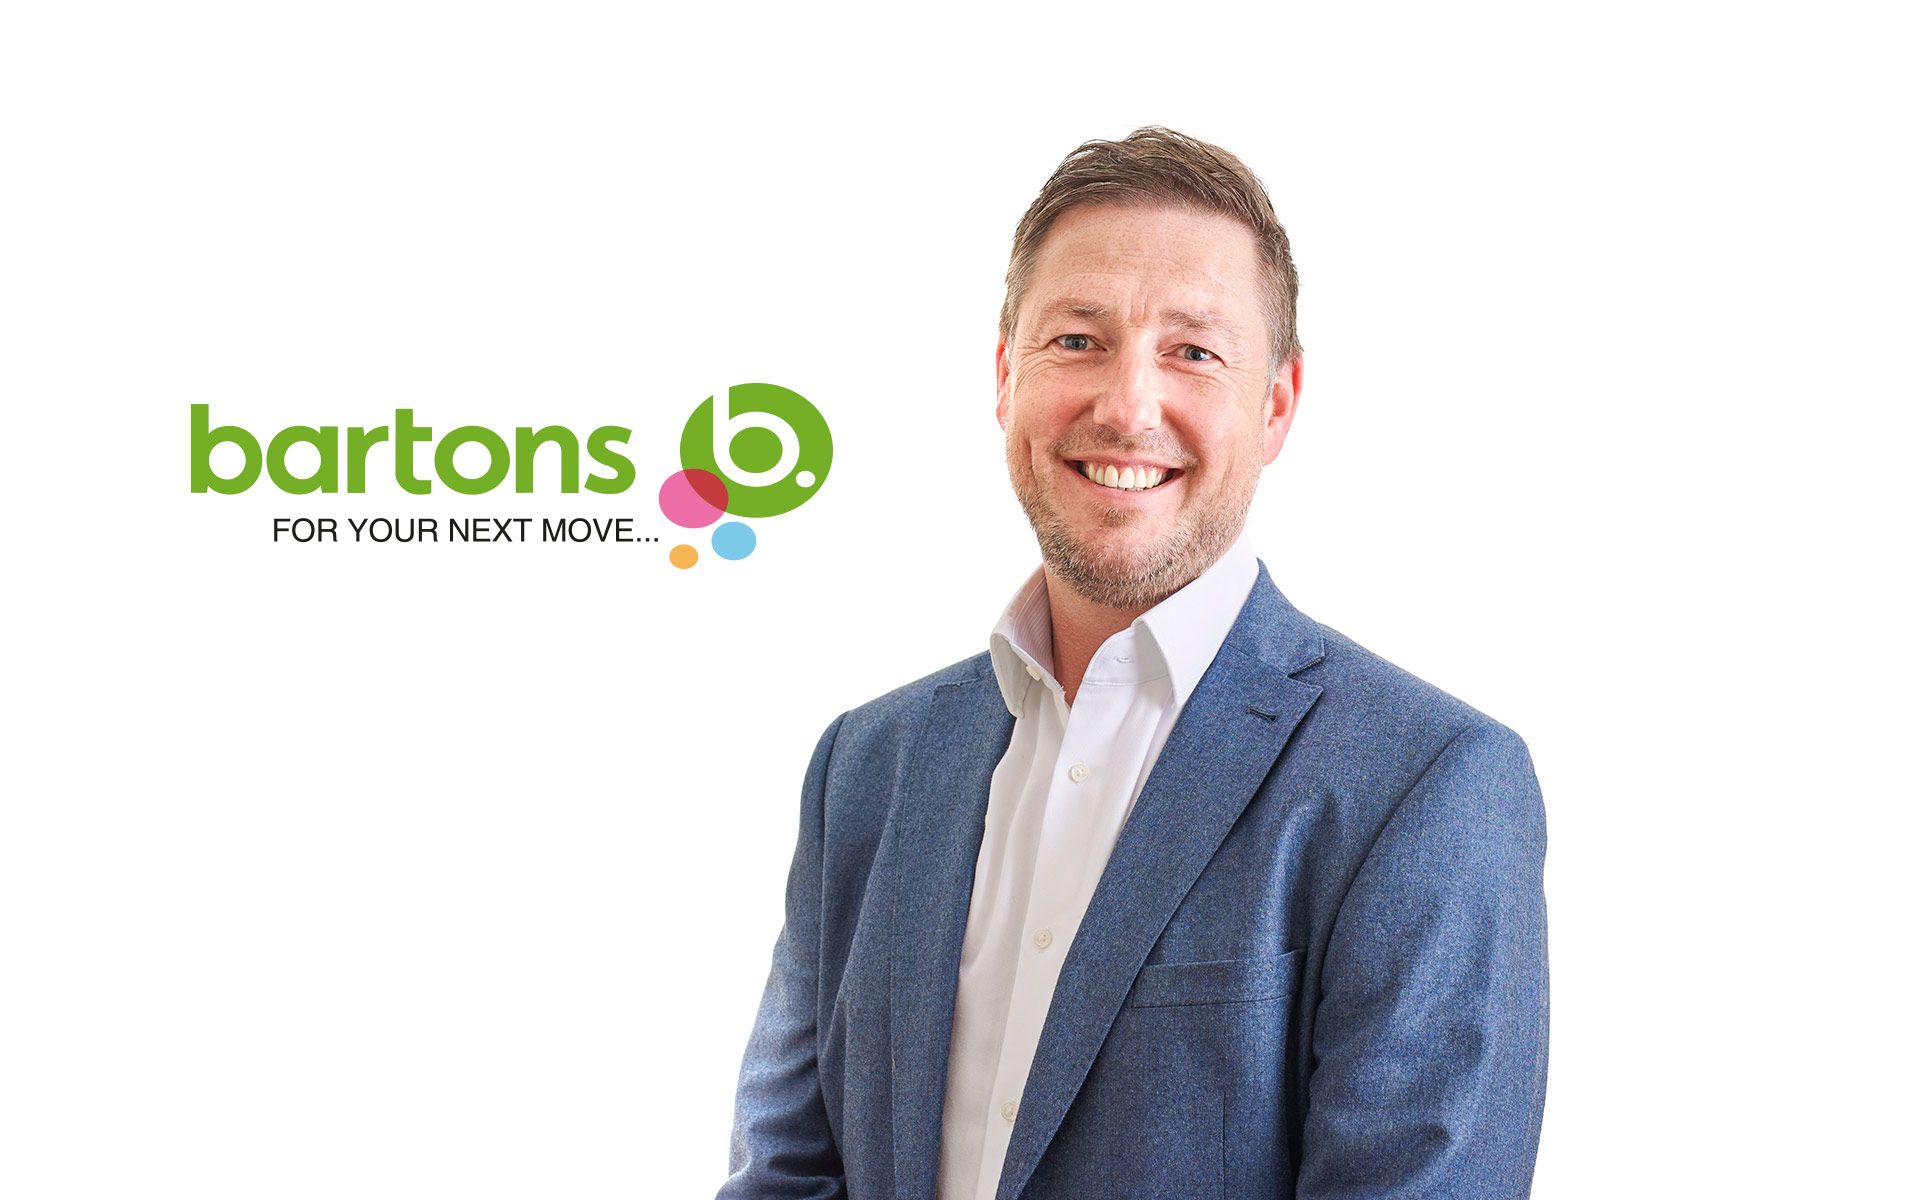 Bartons-IDEA-Rotherham-Photographer-Mark